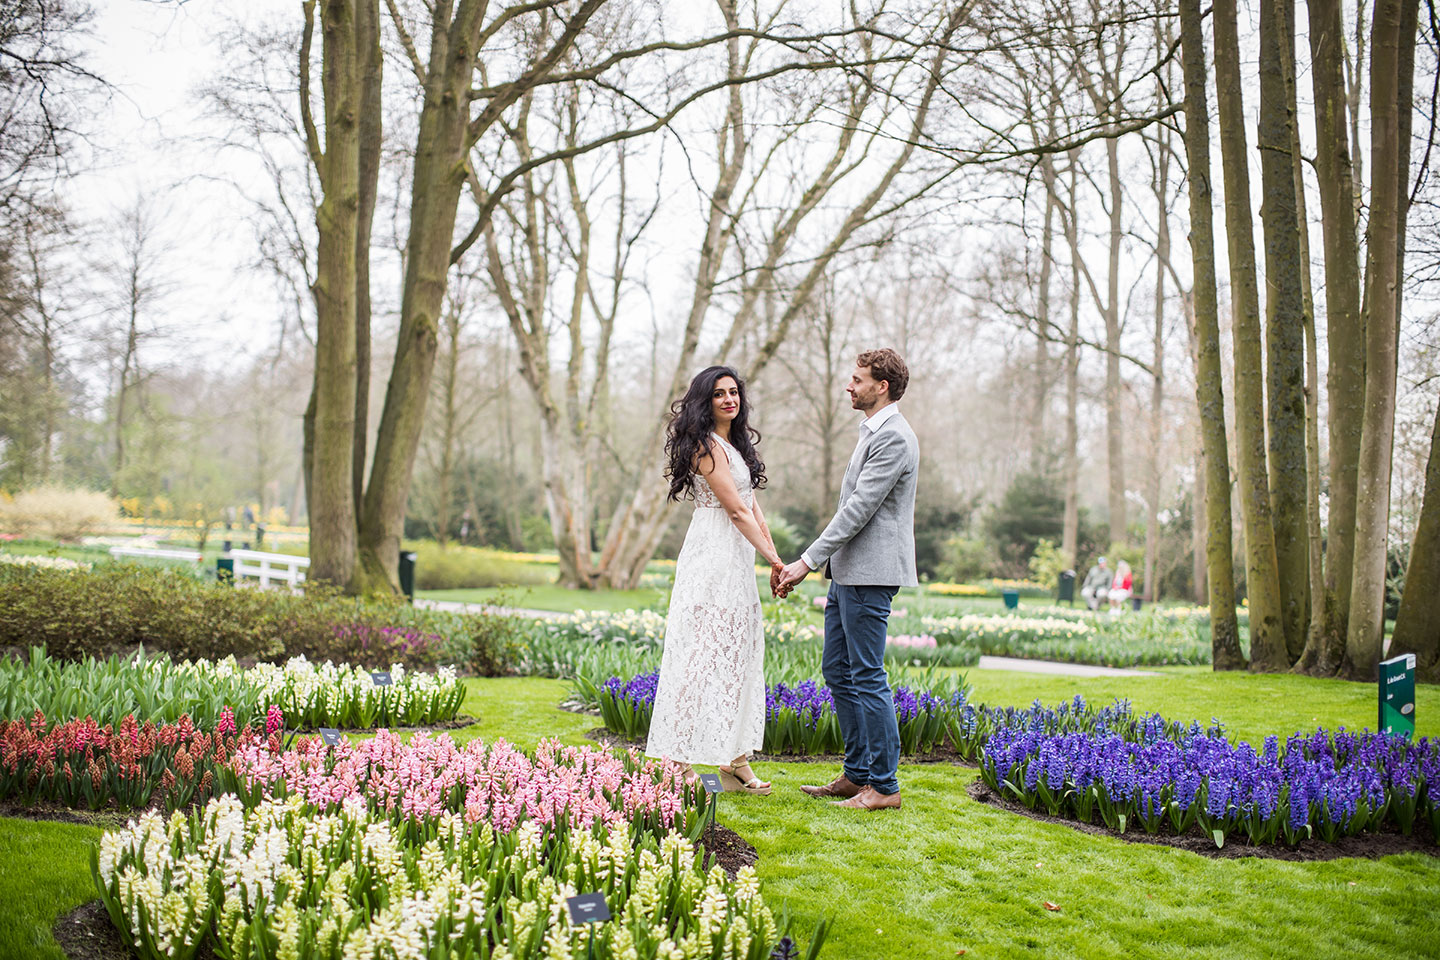 Prewedding photographer Keukenhof flower gardens Netherlands